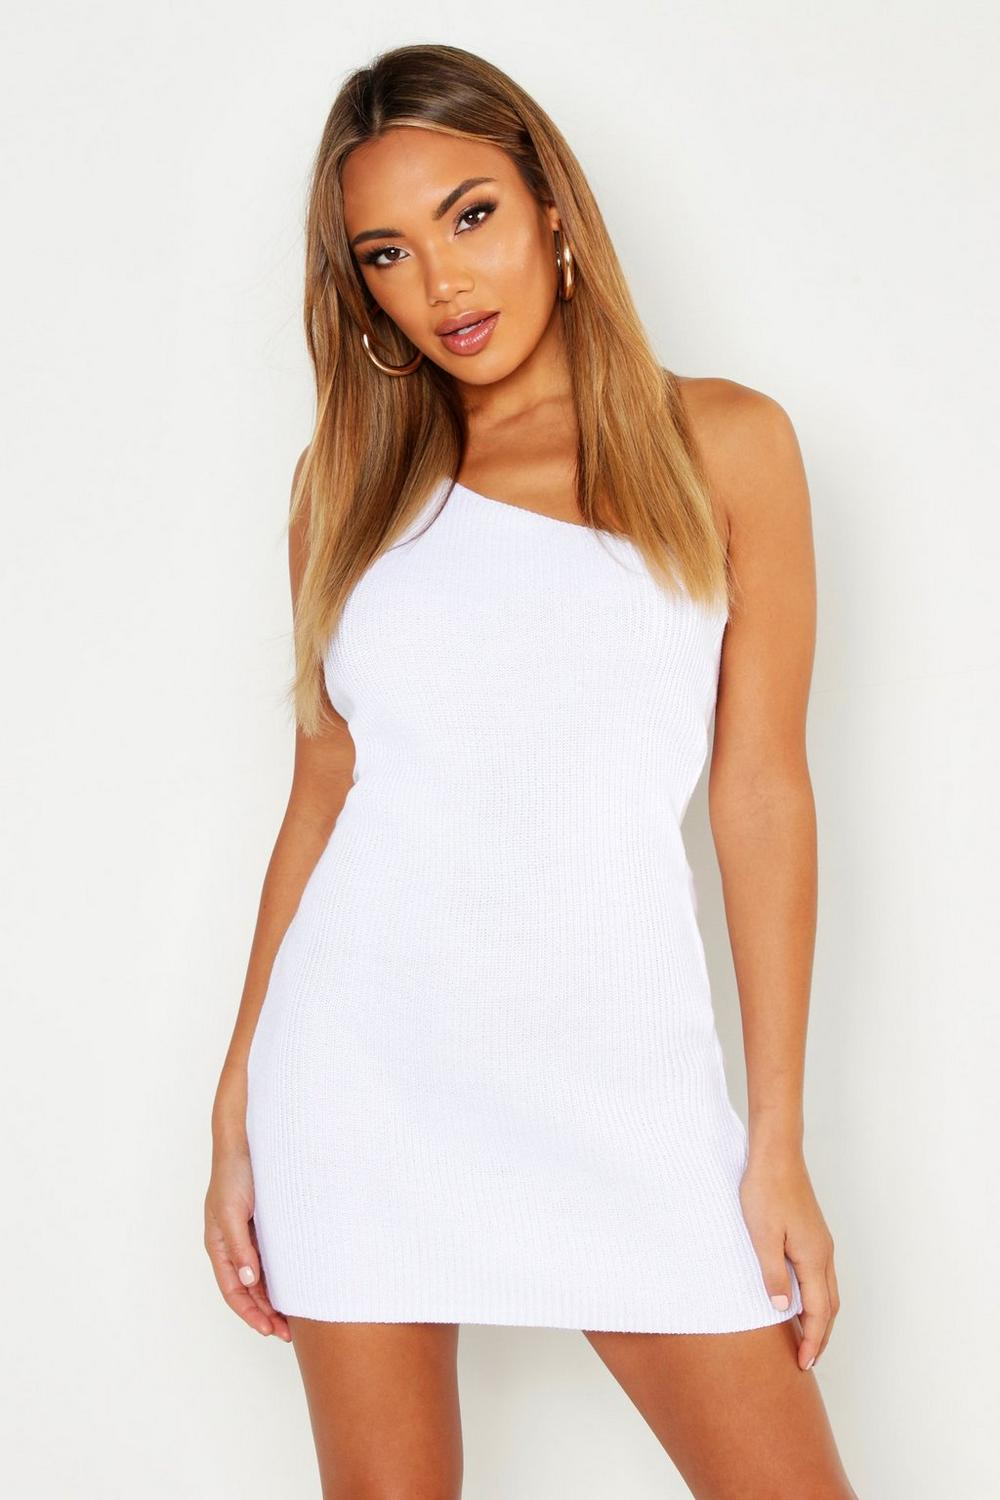 be9b48a345dc Womens White Knitted One Shoulder Mini Dress. Hover to zoom